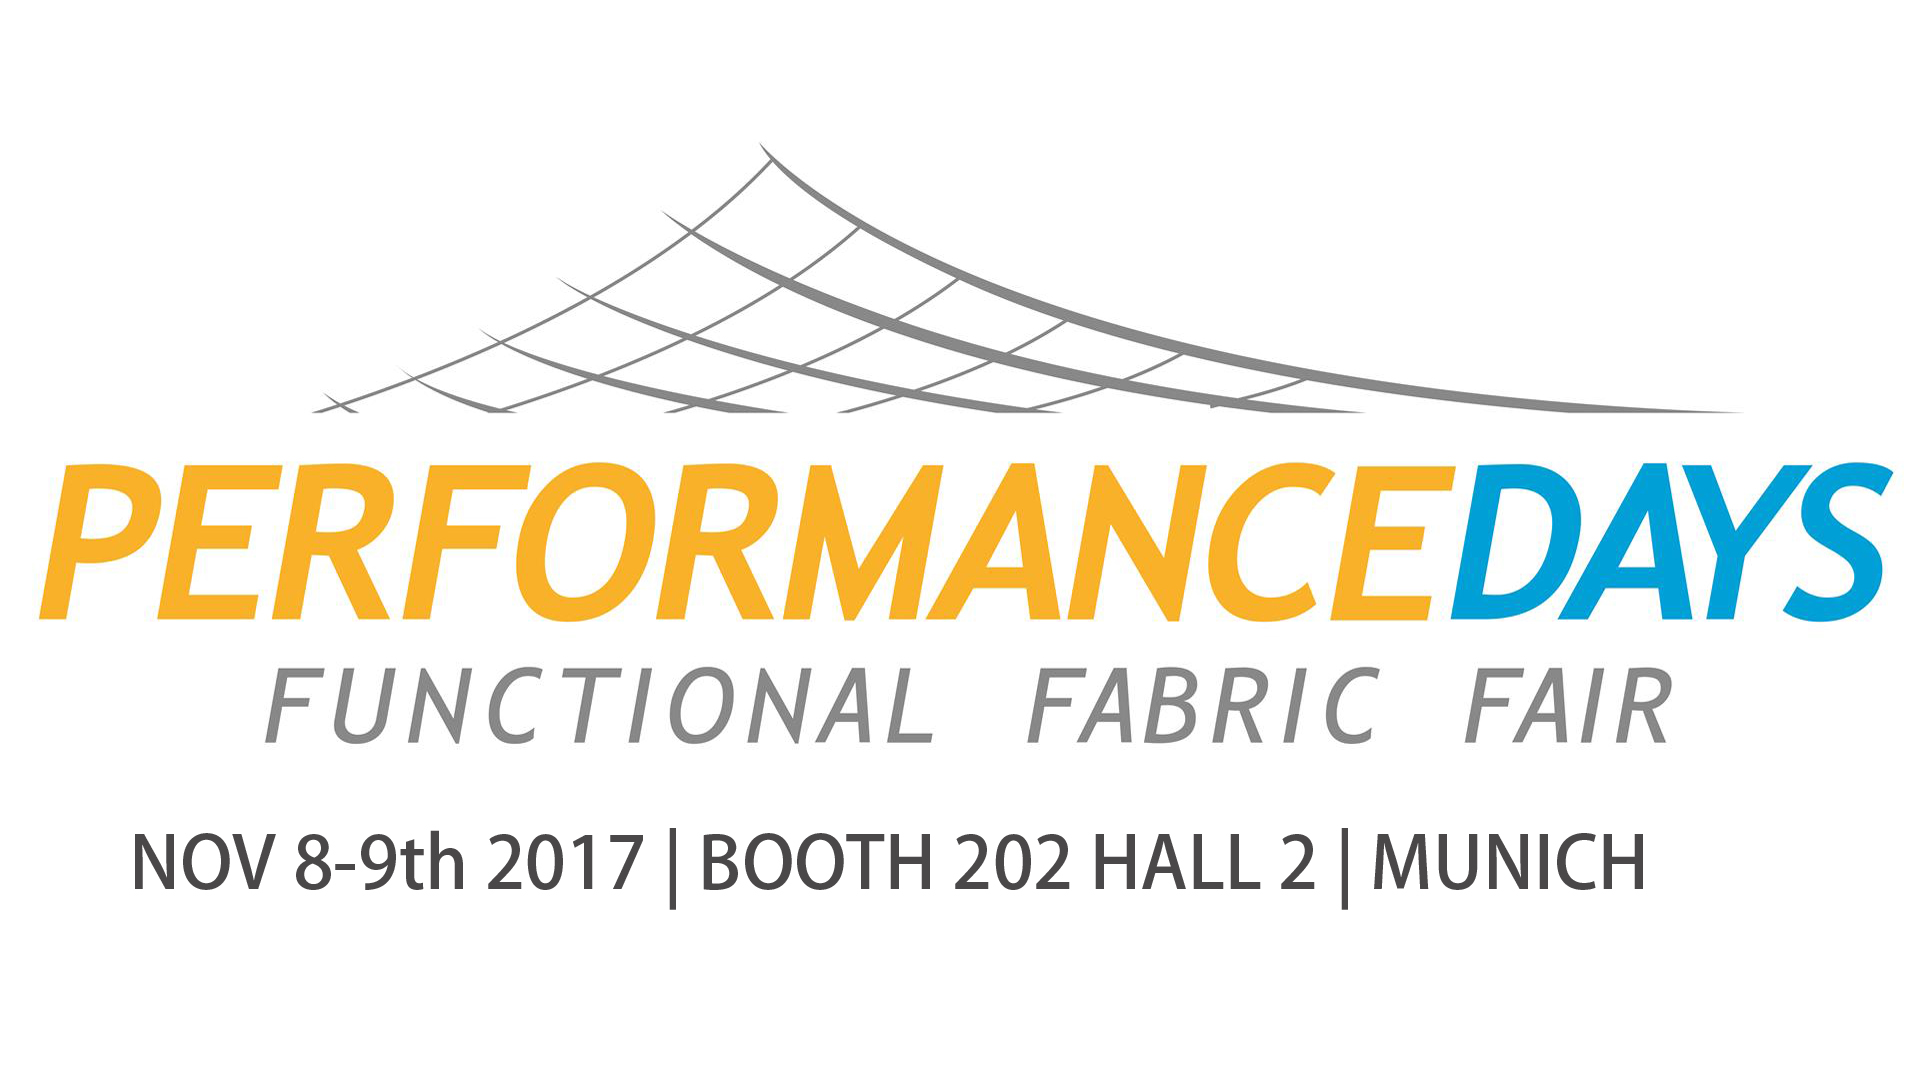 FUNCTIONAL FABRIC SHOW- PERFORMANCE DAYS MUNICH NOV 8-9th 2017